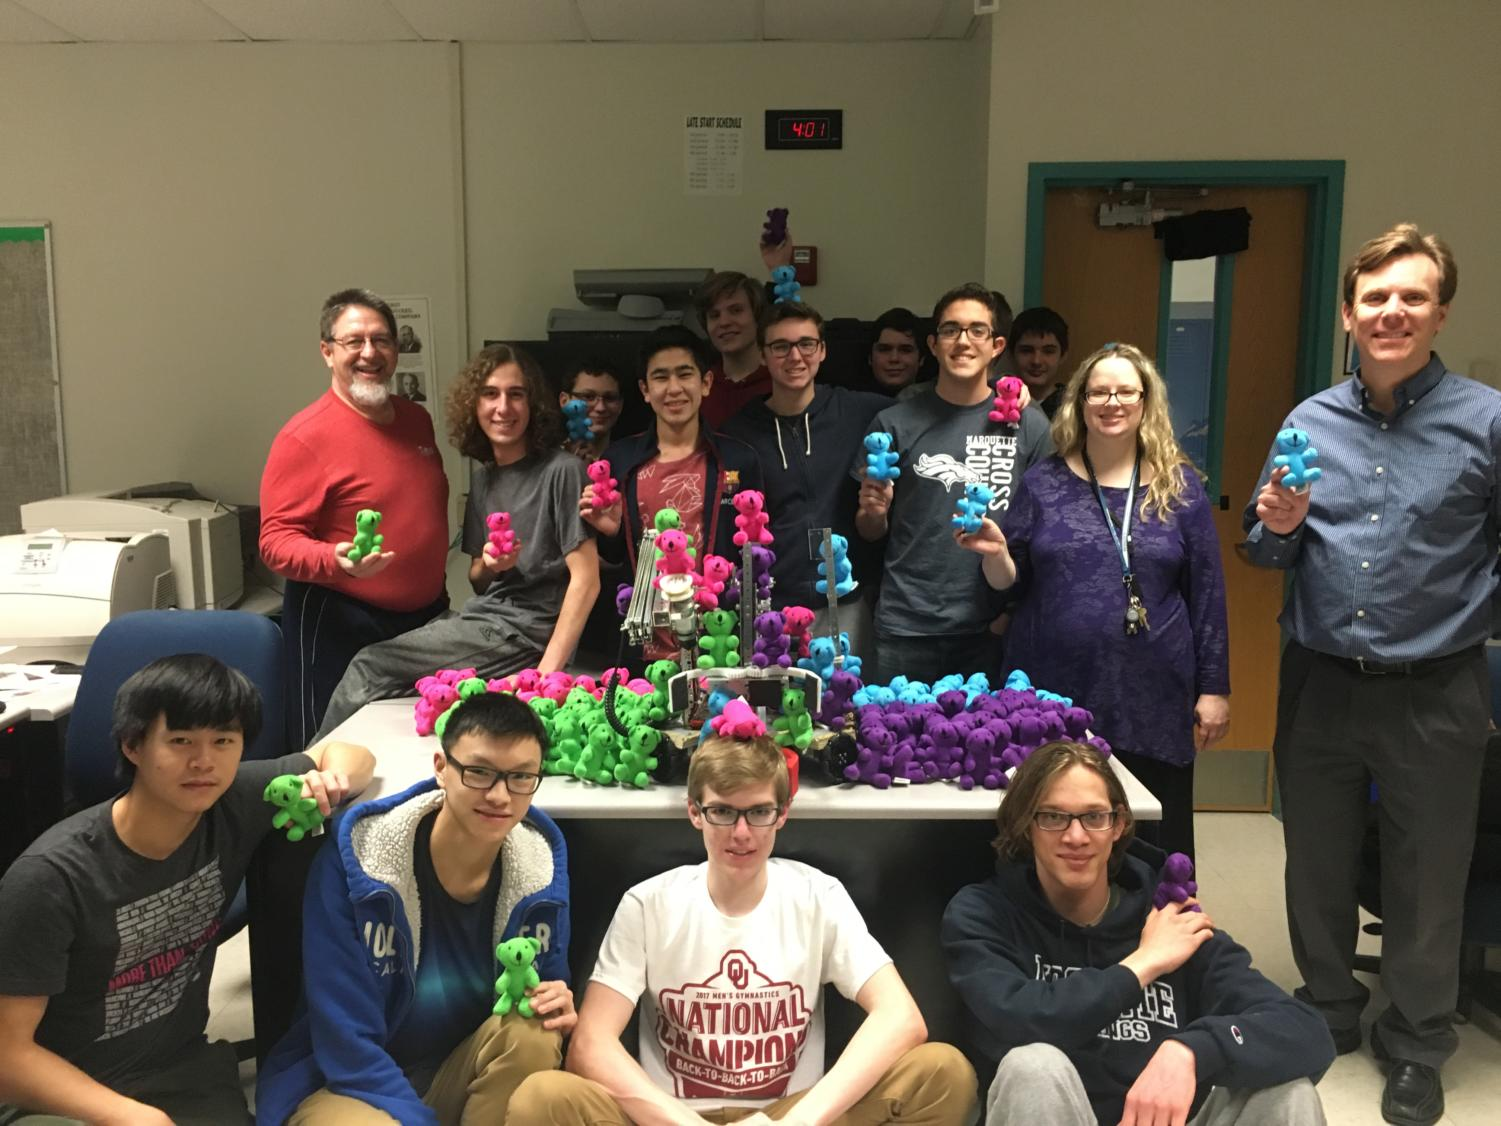 The Baryons Robotics team poses with the gifts that they plan to deliver to patients at Mercy Hospital. The team will be competing at State this weekend.